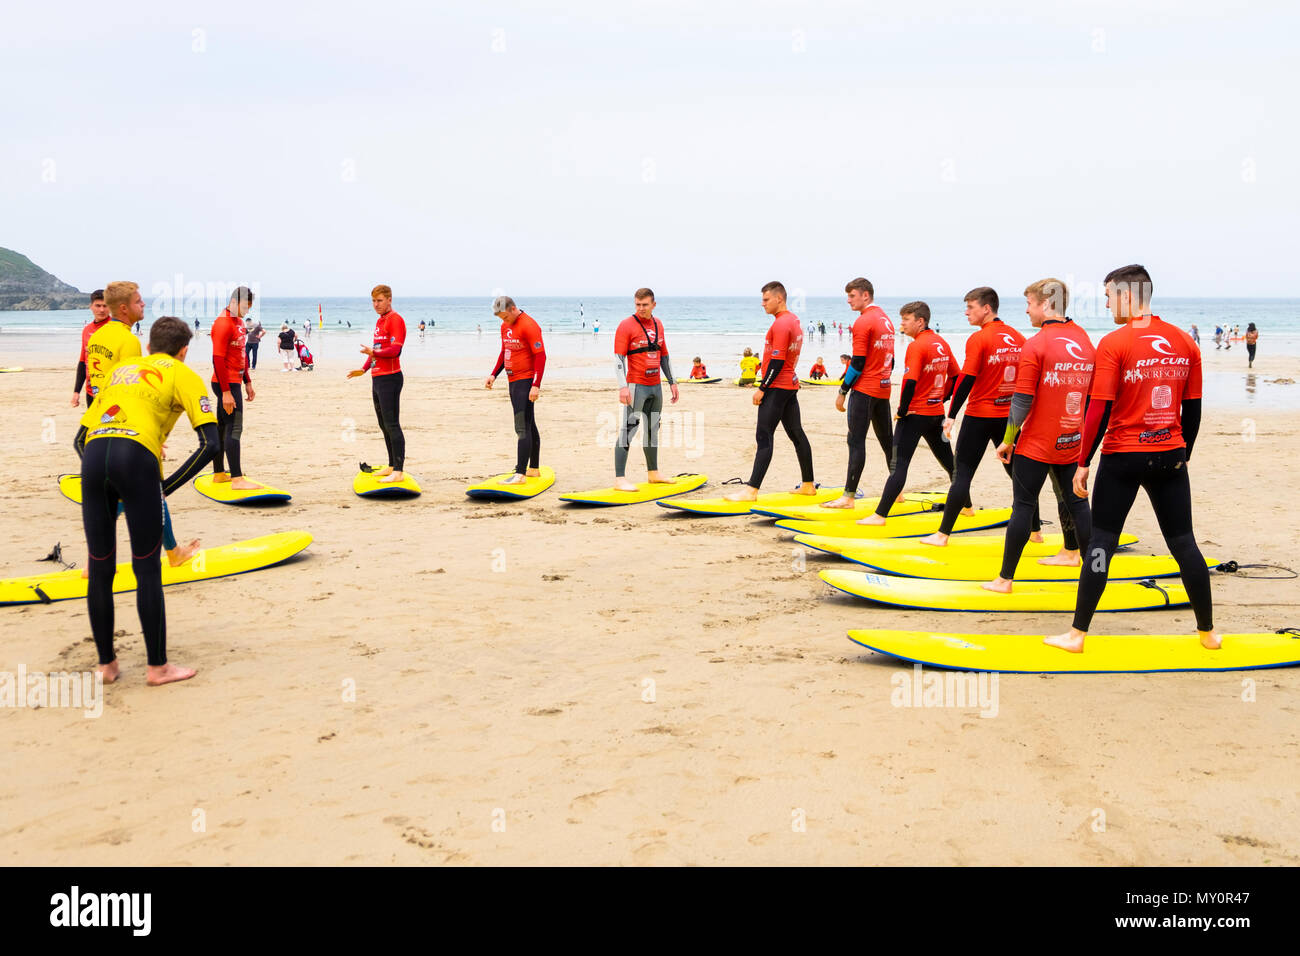 Surf school lessons on the fistral beach, newquay, cornwall, uk - Stock Image